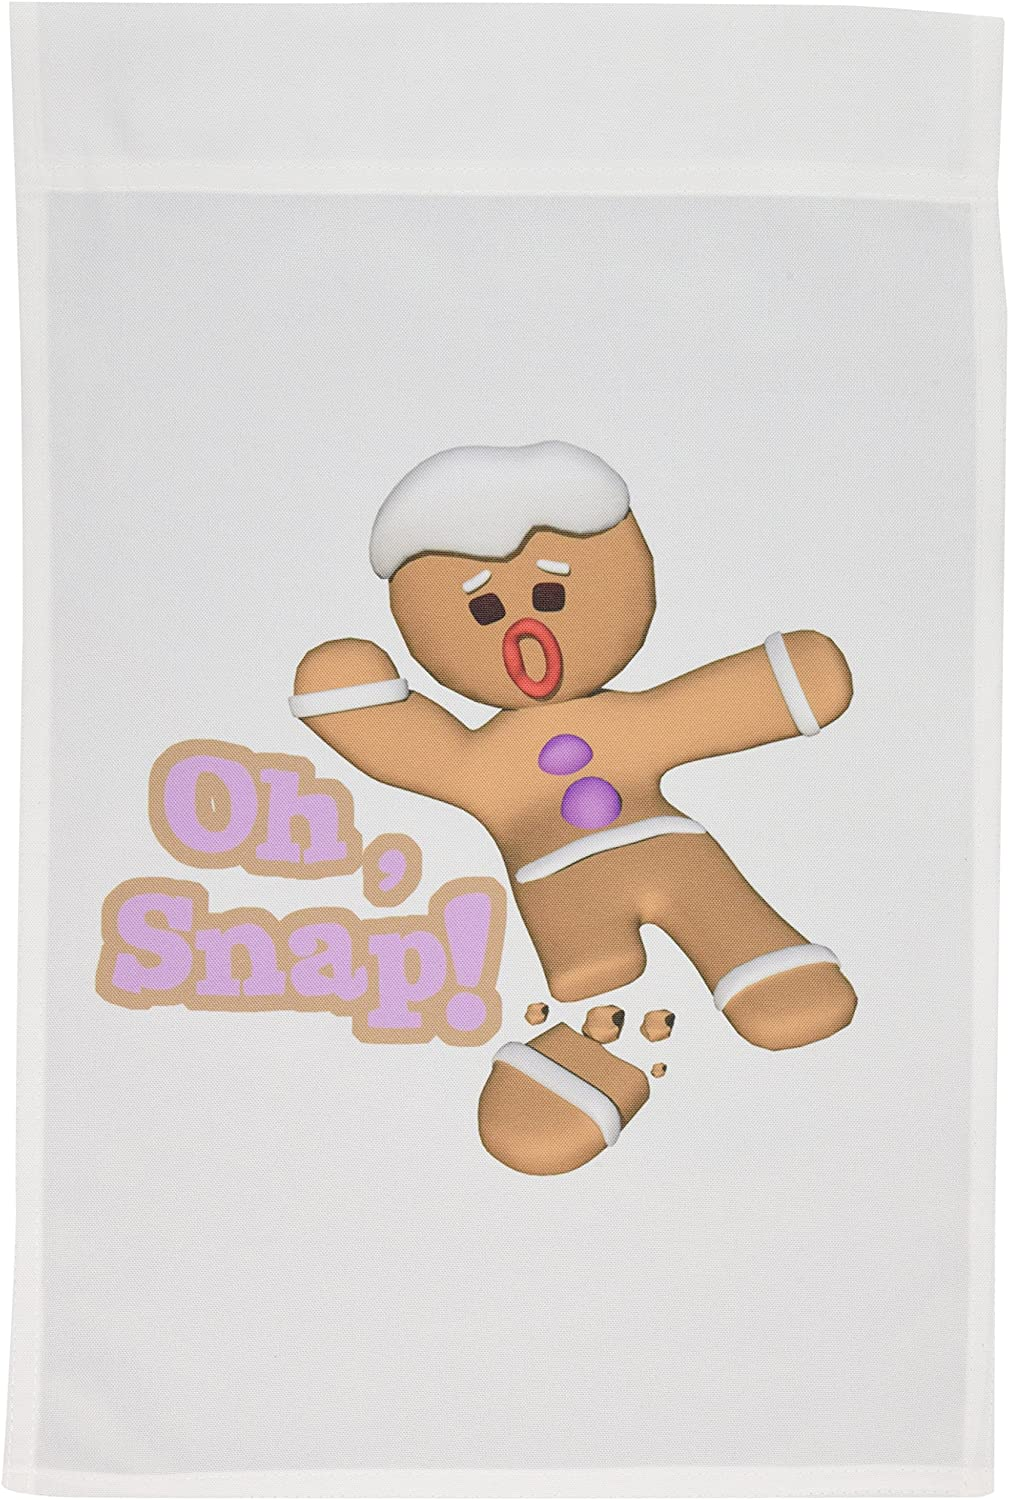 3dRose fl_119149_1 Funny Oh Snap Broken Snapped Gingerbread Man Cookie Holiday Christmas Humor Garden Flag, 12 by 18-Inch